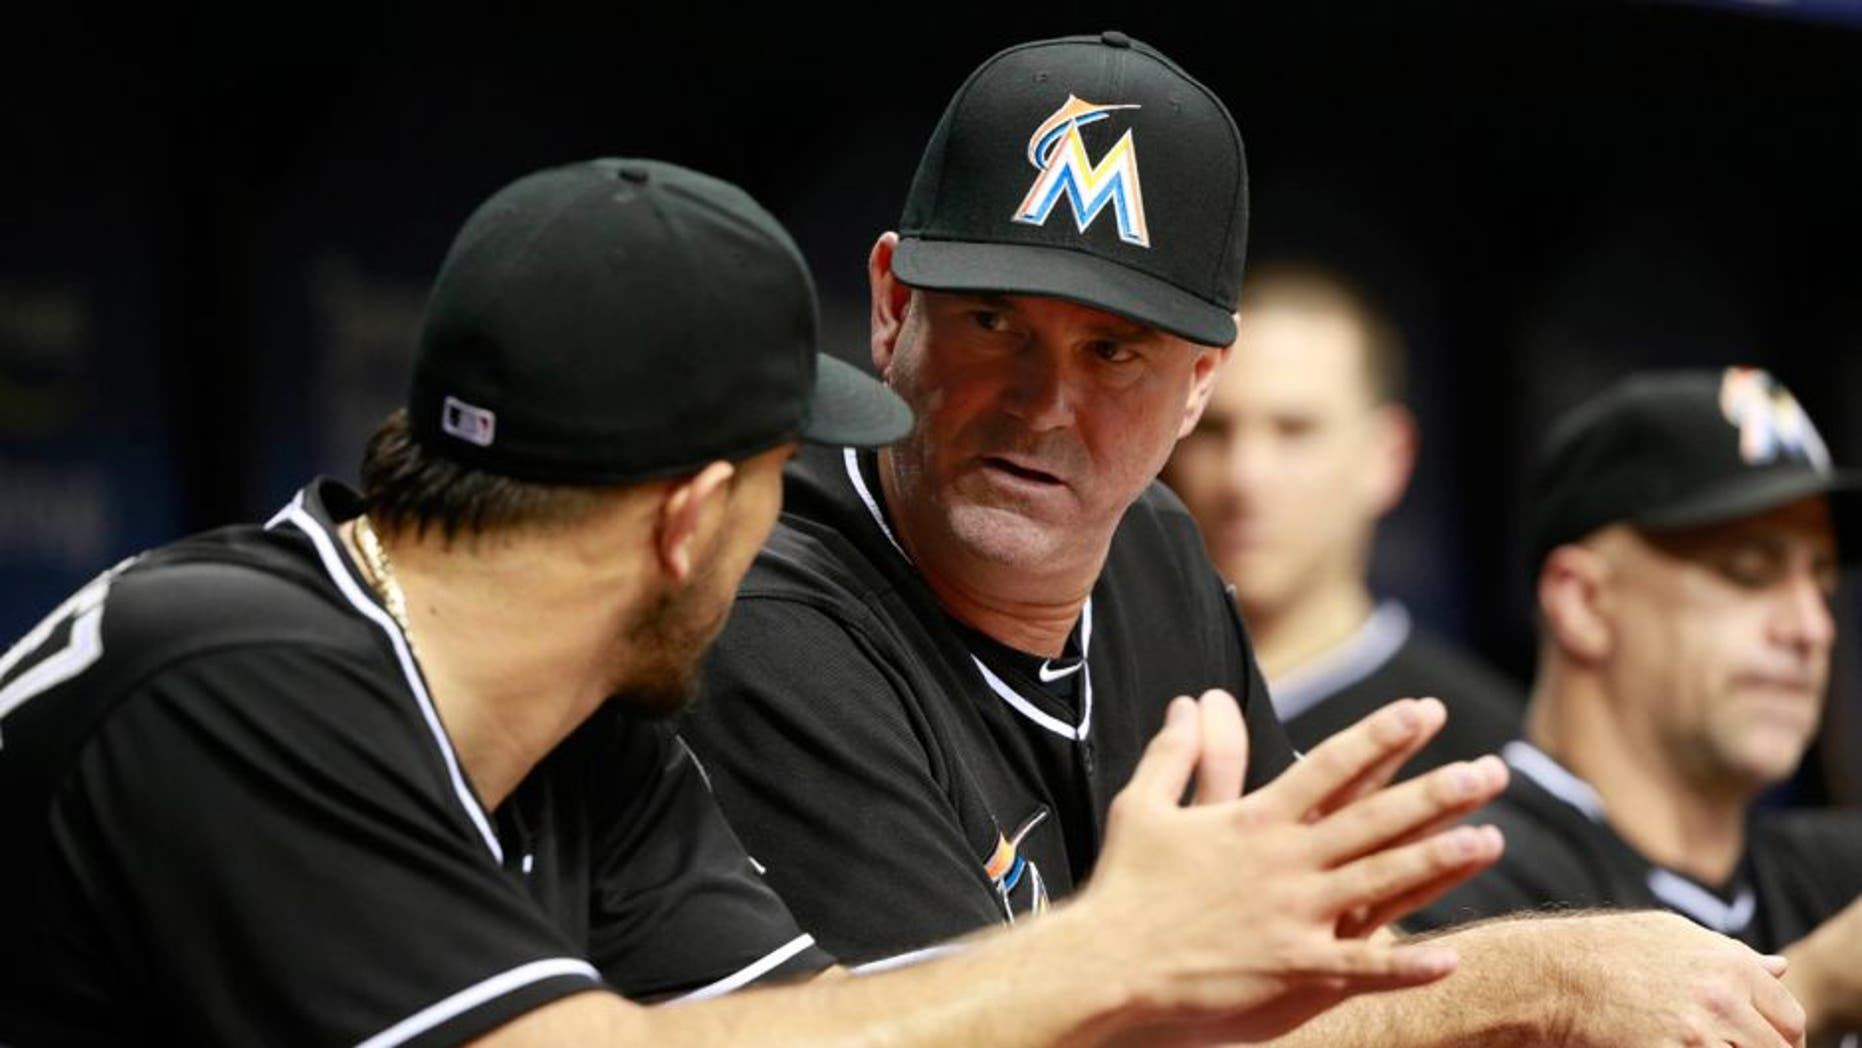 Oct 1, 2015; St. Petersburg, FL, USA; Miami Marlins manager Dan Jennings (26) talks with starting pitcher Jose Fernandez (16) during the fourth inning against the Tampa Bay Rays at Tropicana Field. Mandatory Credit: Kim Klement-USA TODAY Sports